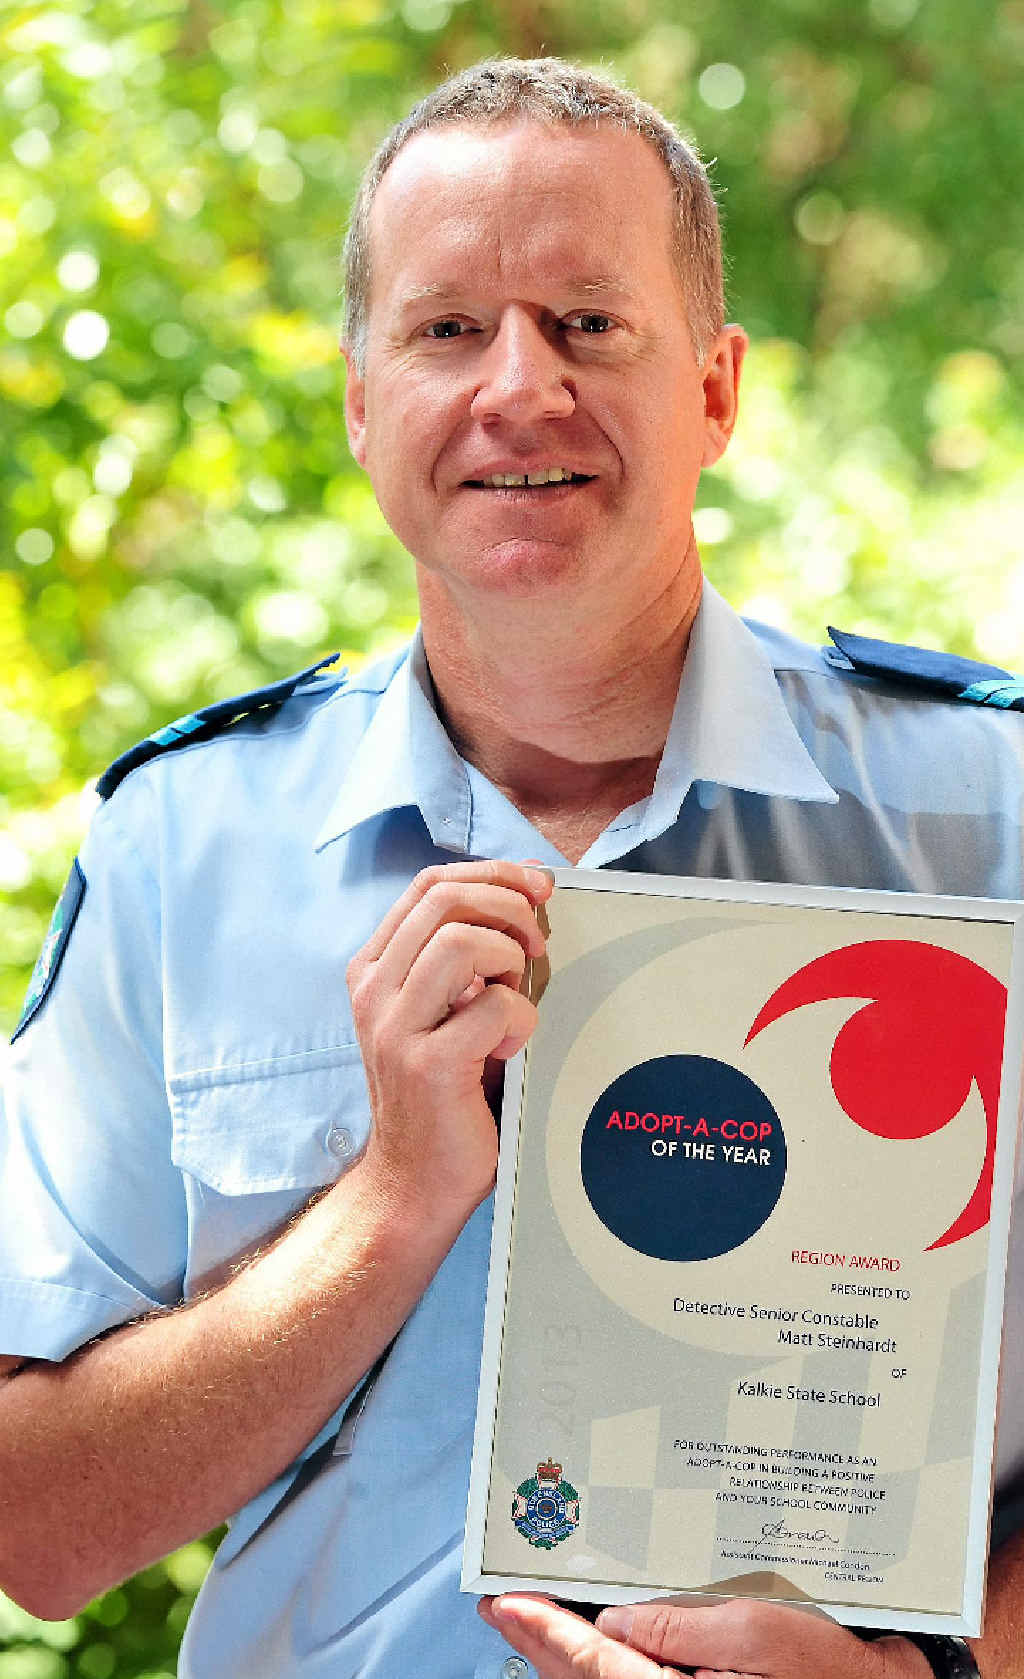 TOP COP: Senior Constable Matt Steinhardt won this year's Adopt-a-Cop award for his outstanding work at Kalkie State School.